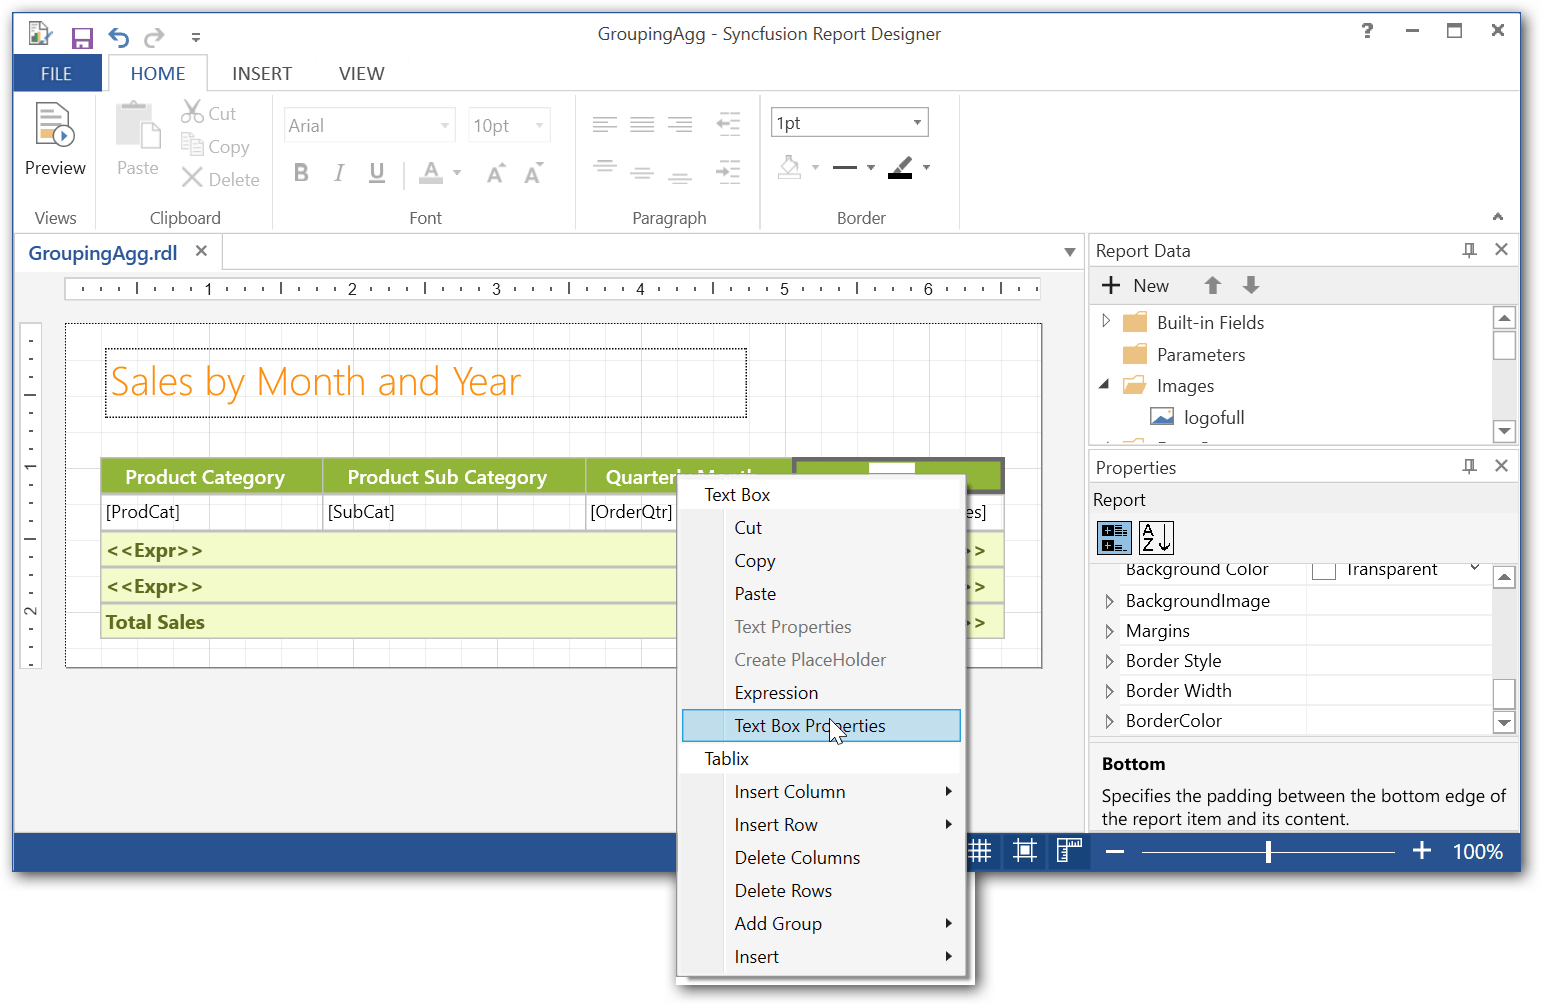 Right click the report item and select properties